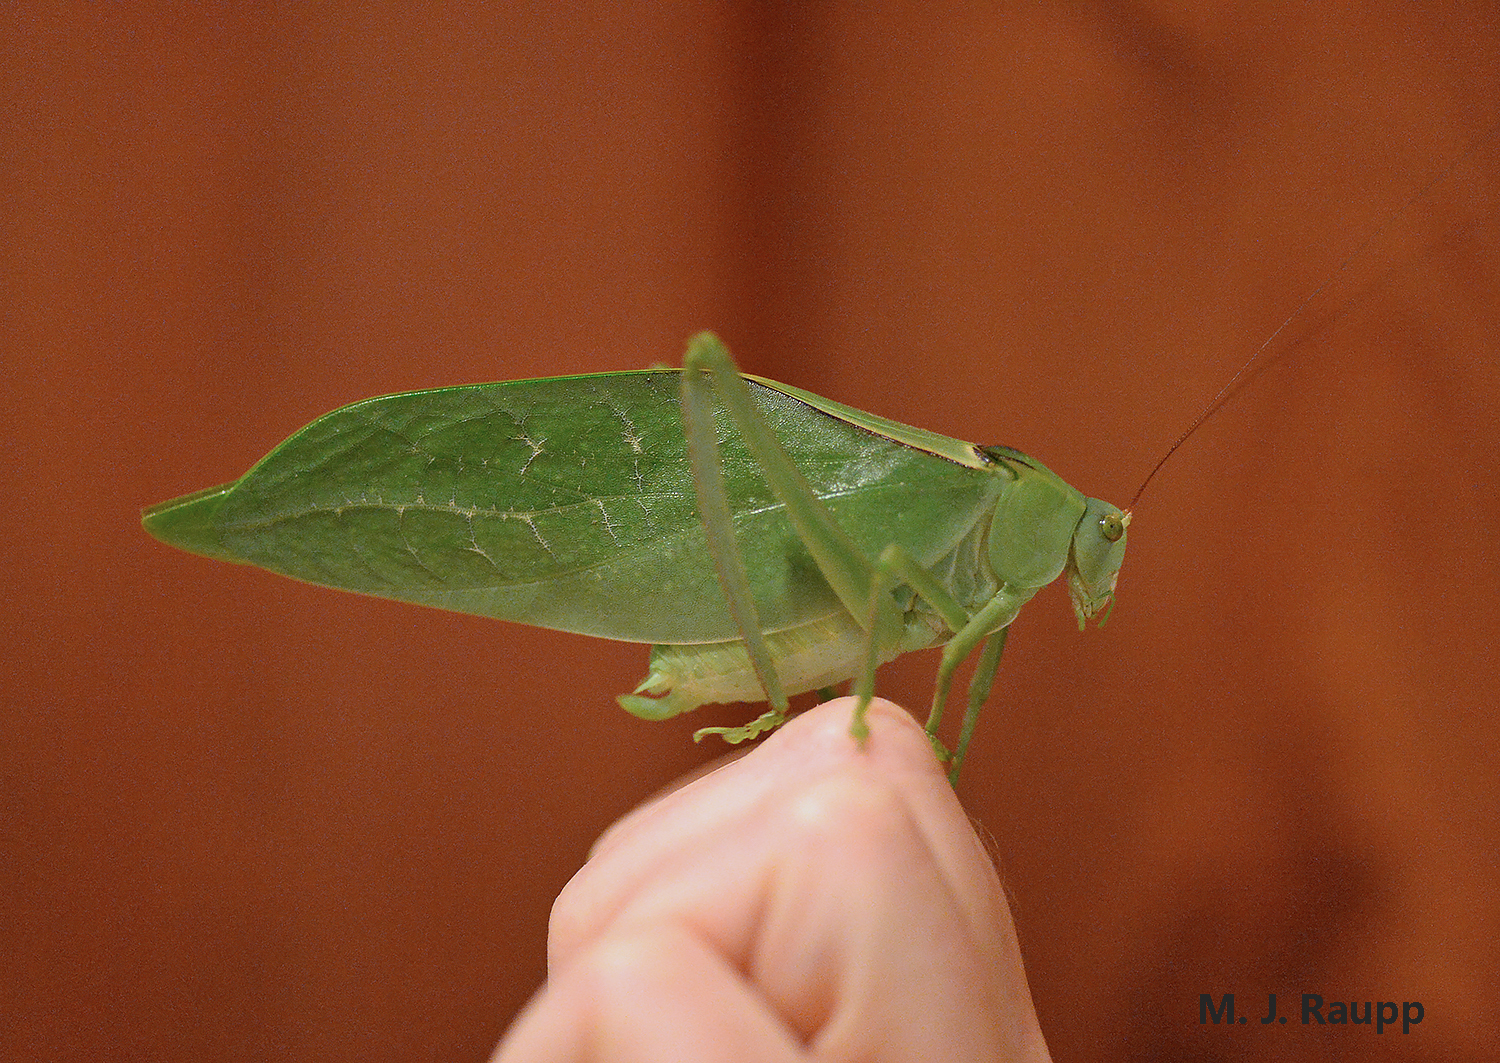 Round-headed katydids in the Costa Rican rainforest attain prodigious size.